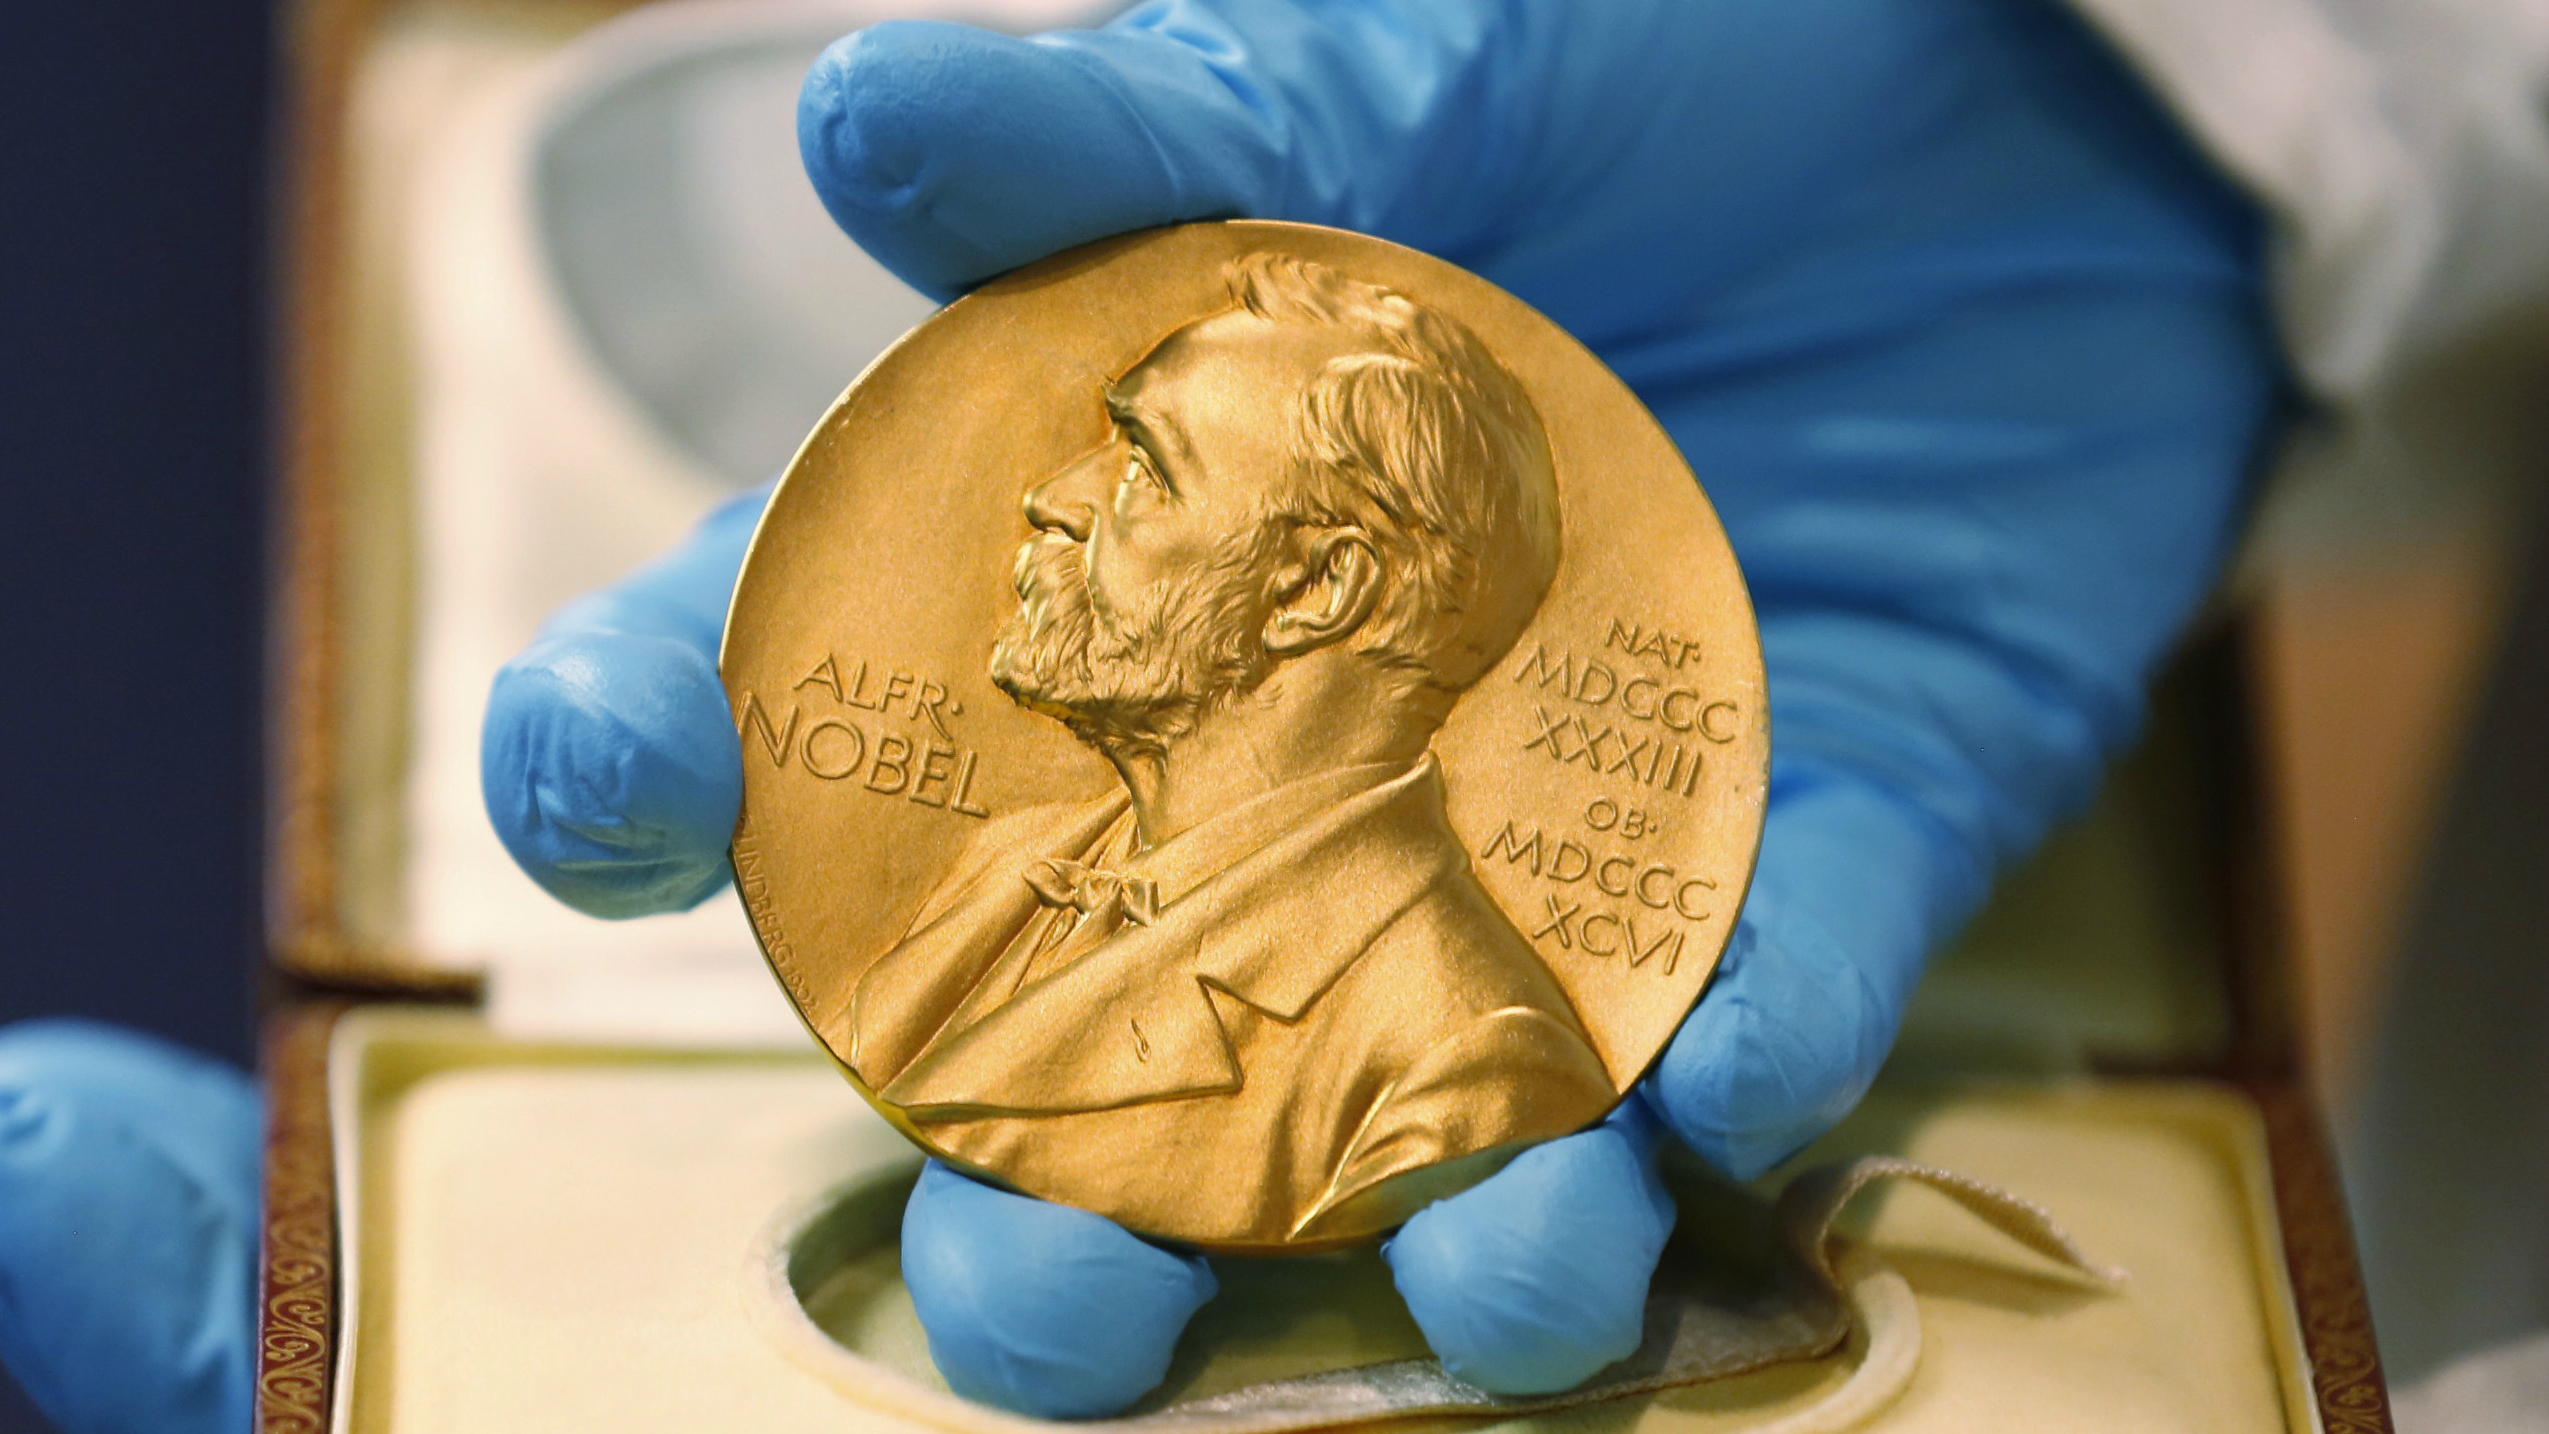 LE- In this file photo dated Friday, April 17, 2015, A national libray employee shows the gold Nobel Prize medal awarded to the late novelist Gabriel Garcia Marquez, in Bogota, Colombia. The beginning of October 2015 means Nobel Prize time, when committees in Stockholm and Oslo announce the winners of what many consider the most prestigious awards in the world, each worth some 8 million Swedish kronor (US dlrs 960,000) presented to the worthy recipients with a diploma and a gold medal. (AP Photo/Fernando Vergara